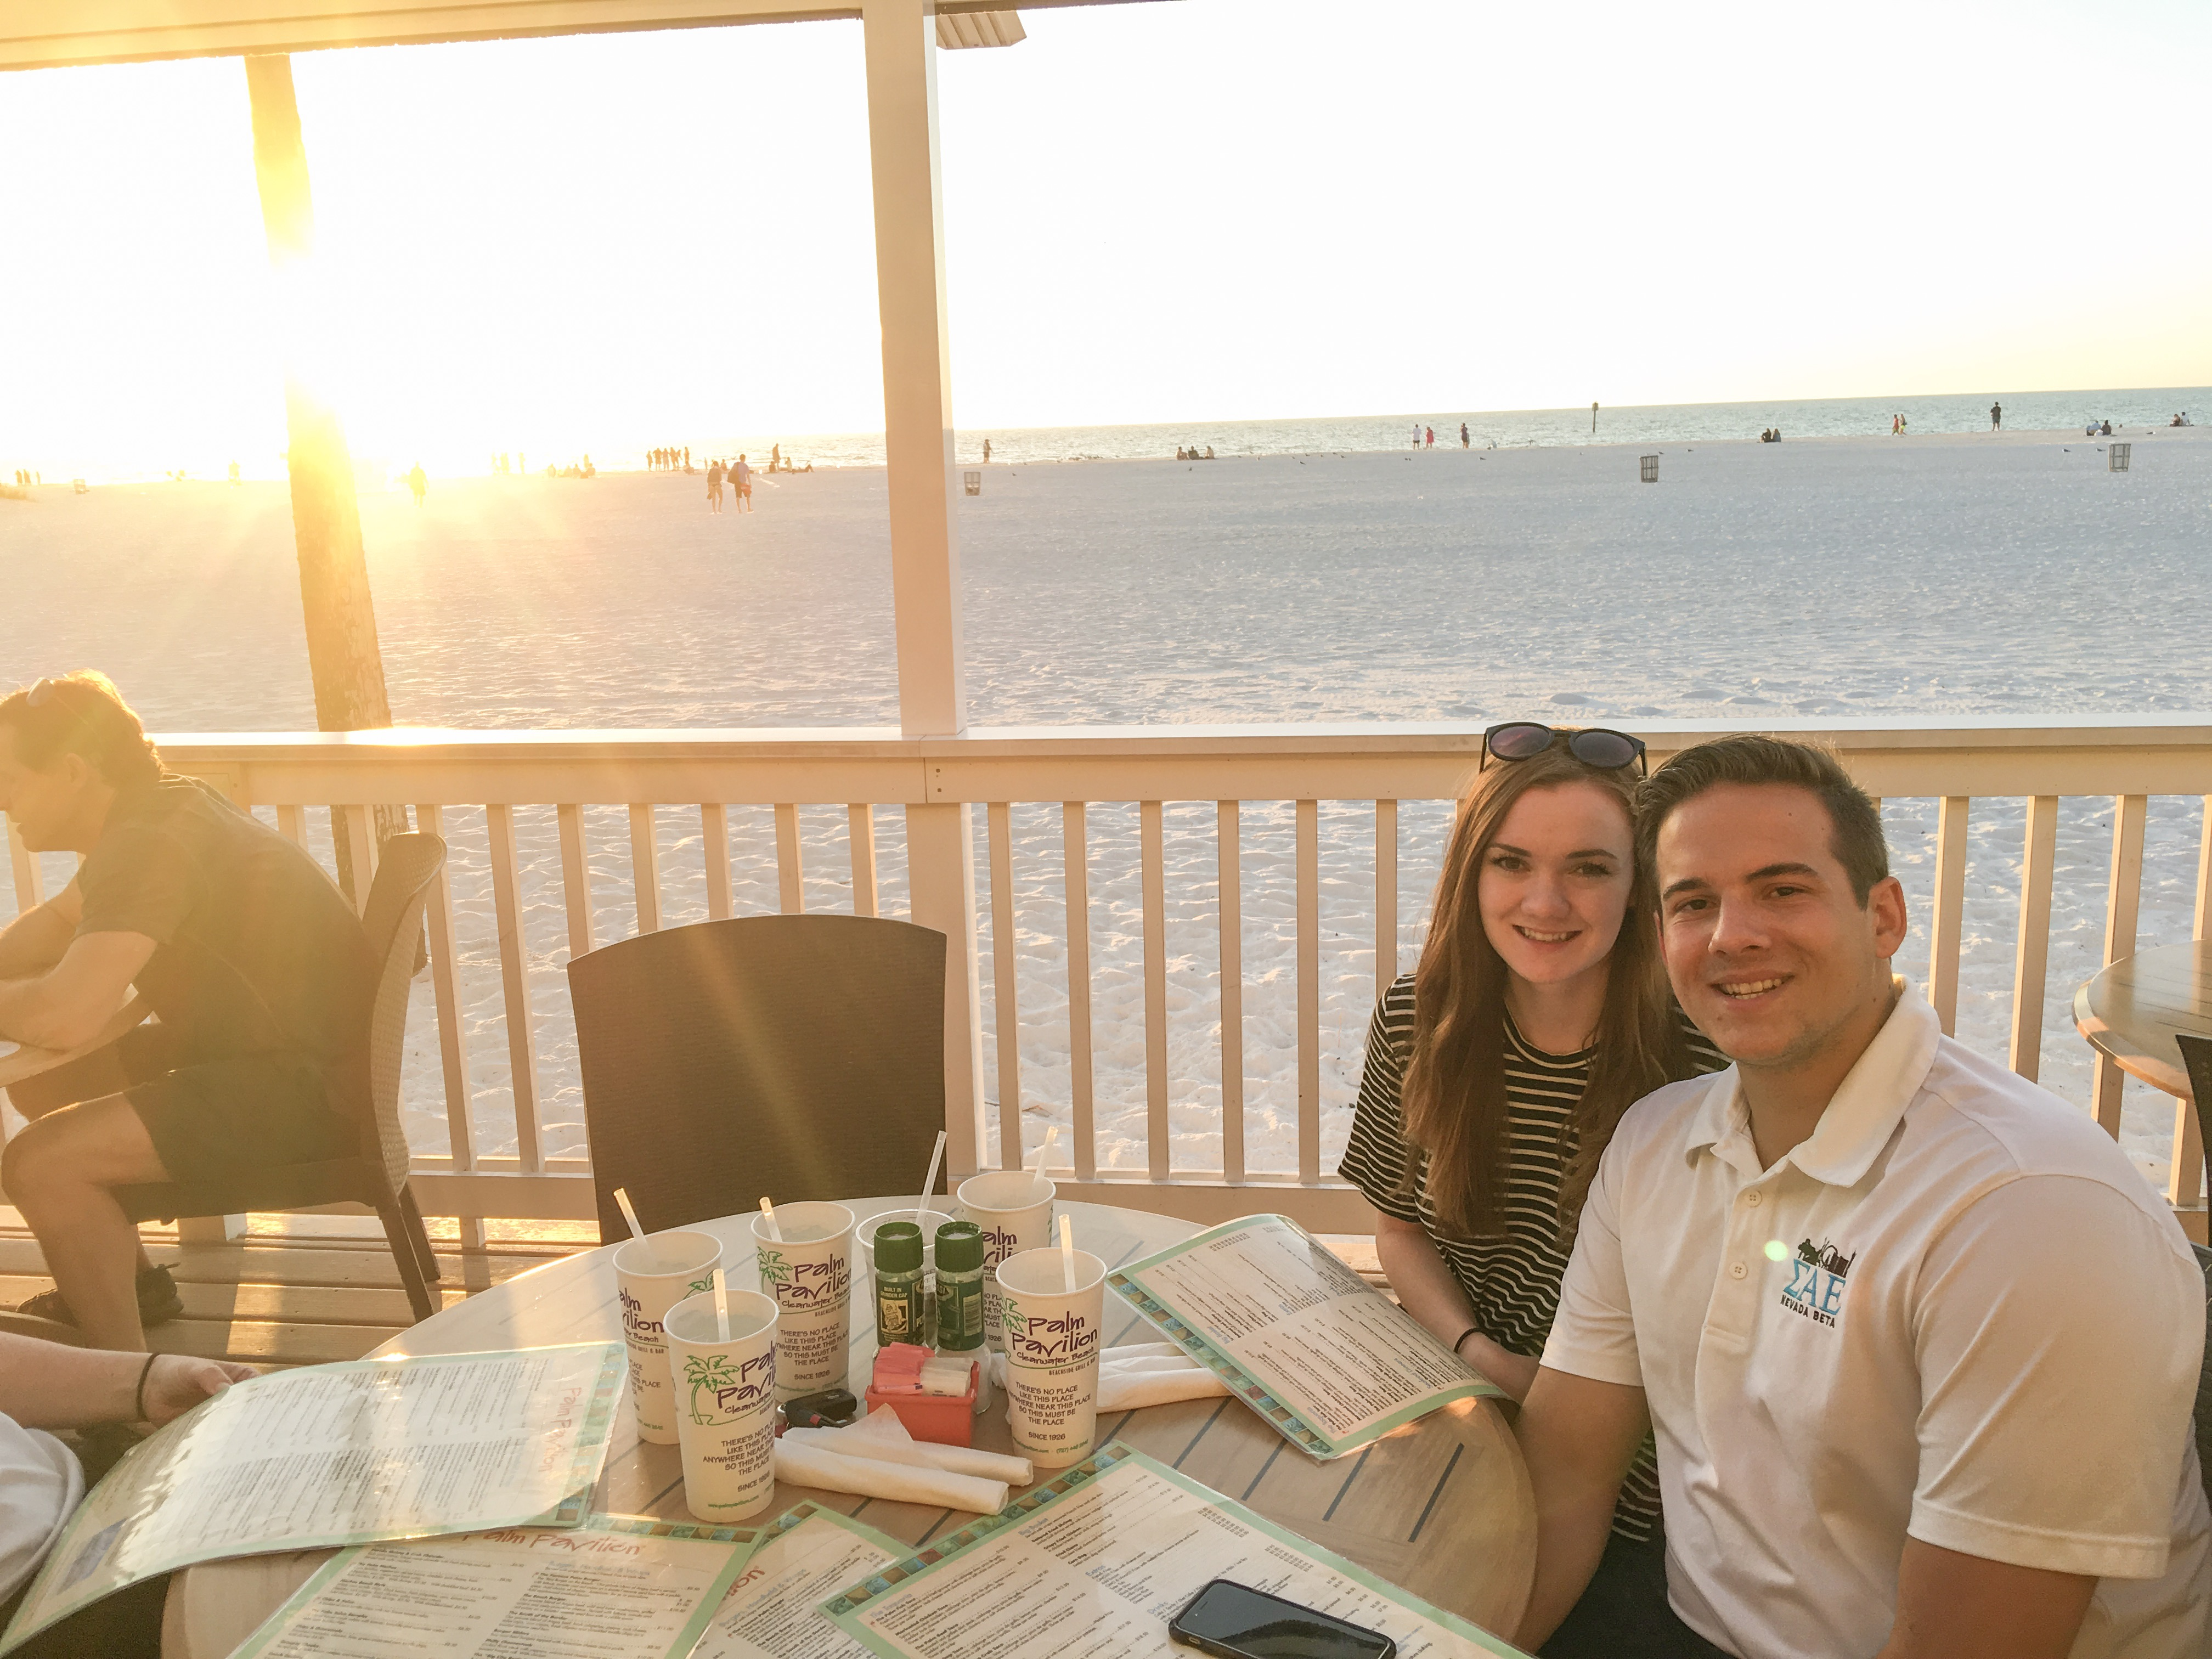 Palm Pavilion Restaurant on Clearwater Beach, Florida